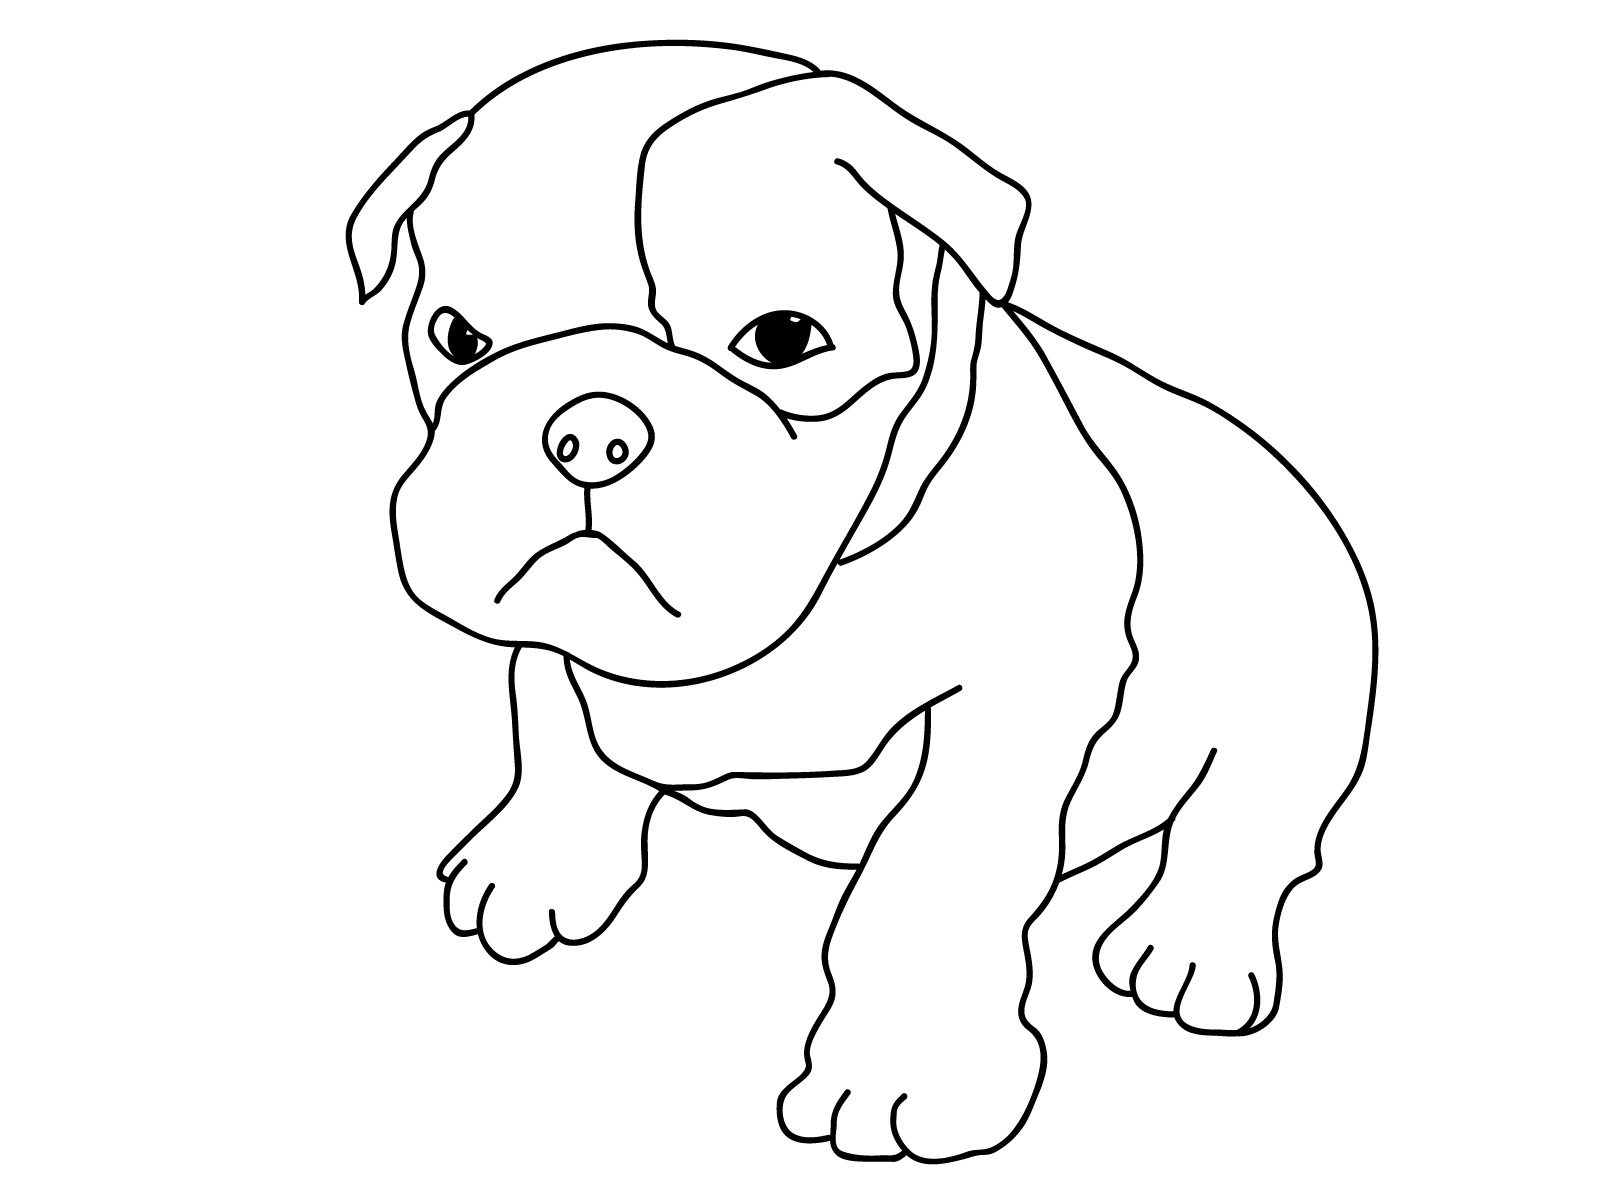 bulldog puppy coloring pages cute little american bulldog puppy coloring page for bulldog puppy coloring pages